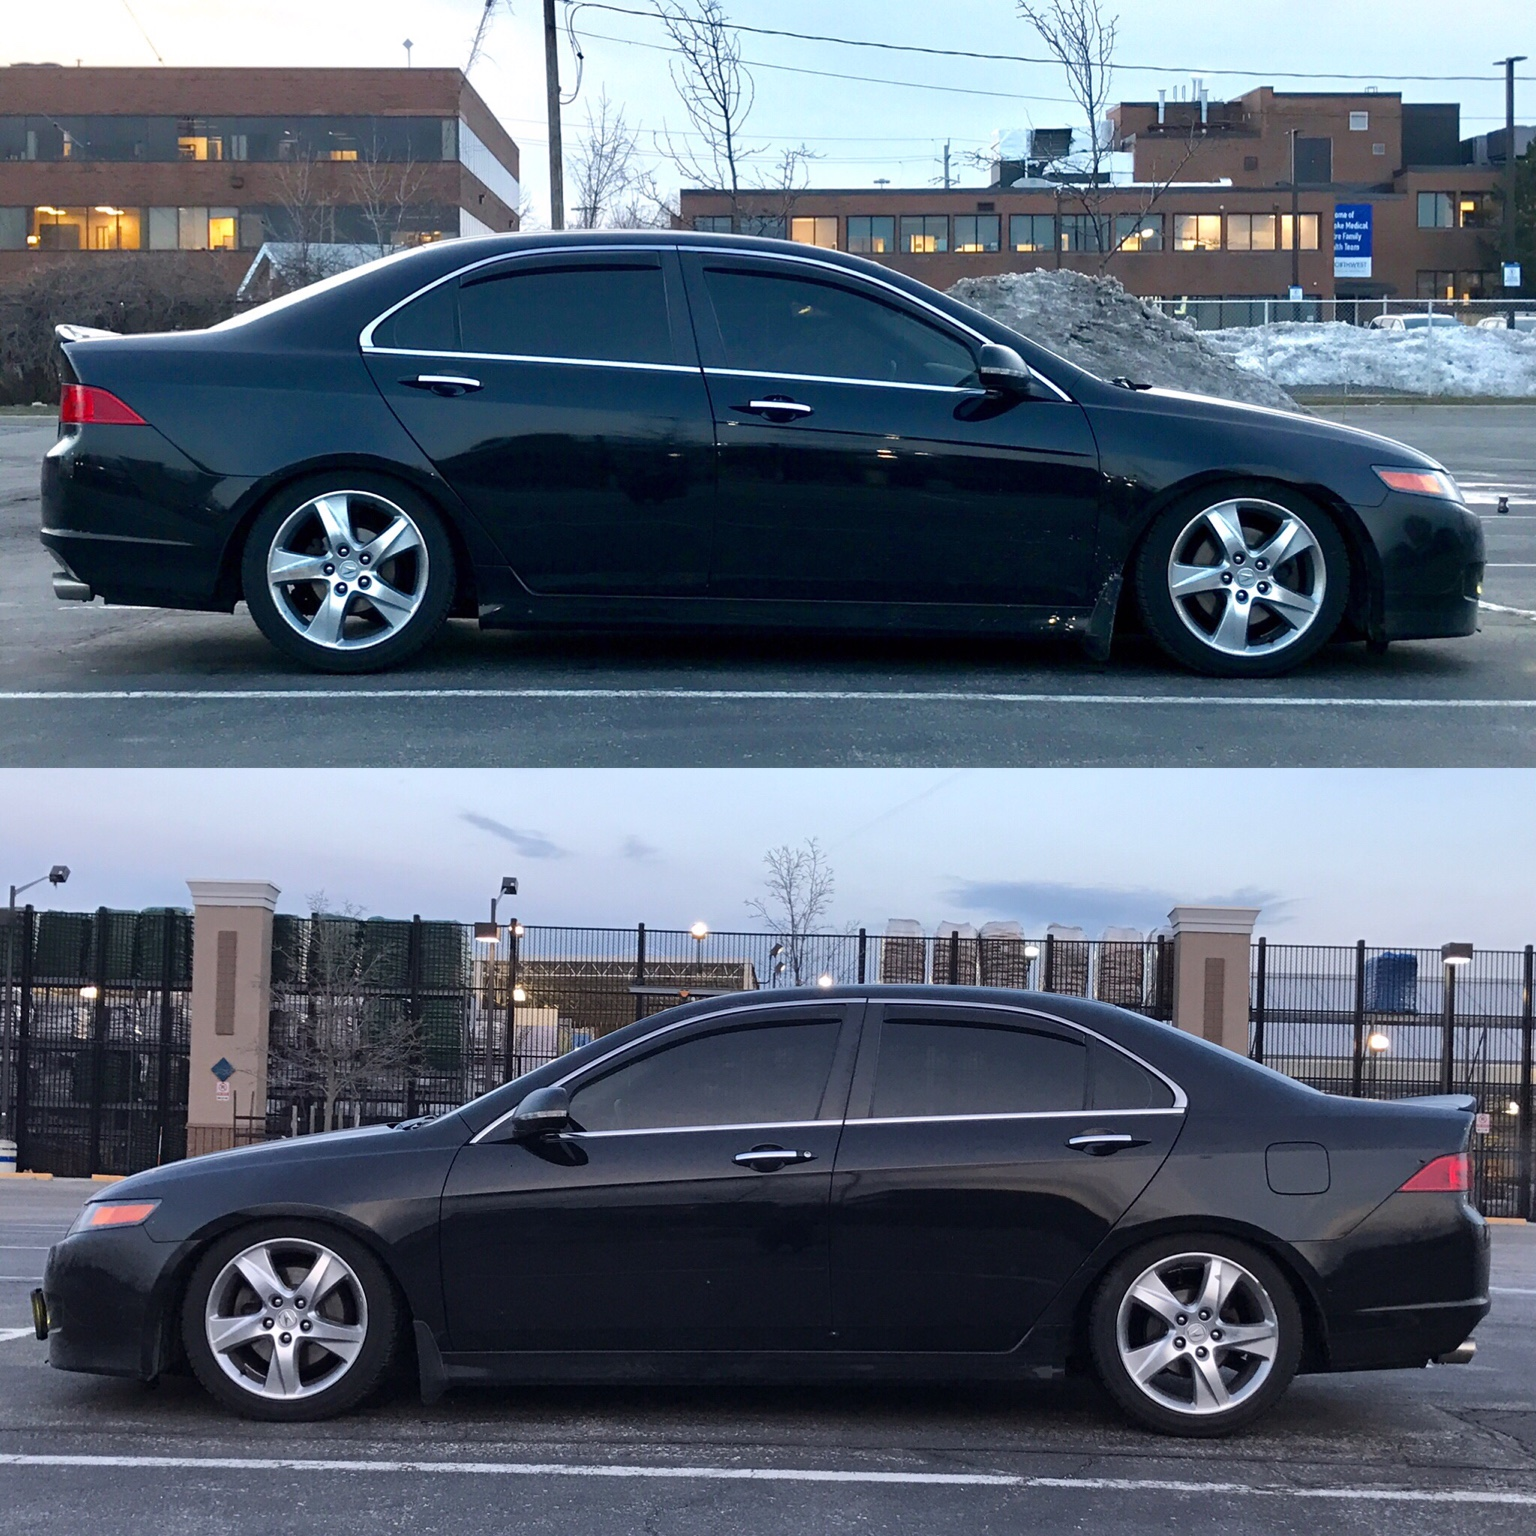 Tsx Quotes: My 06 TSX Journal